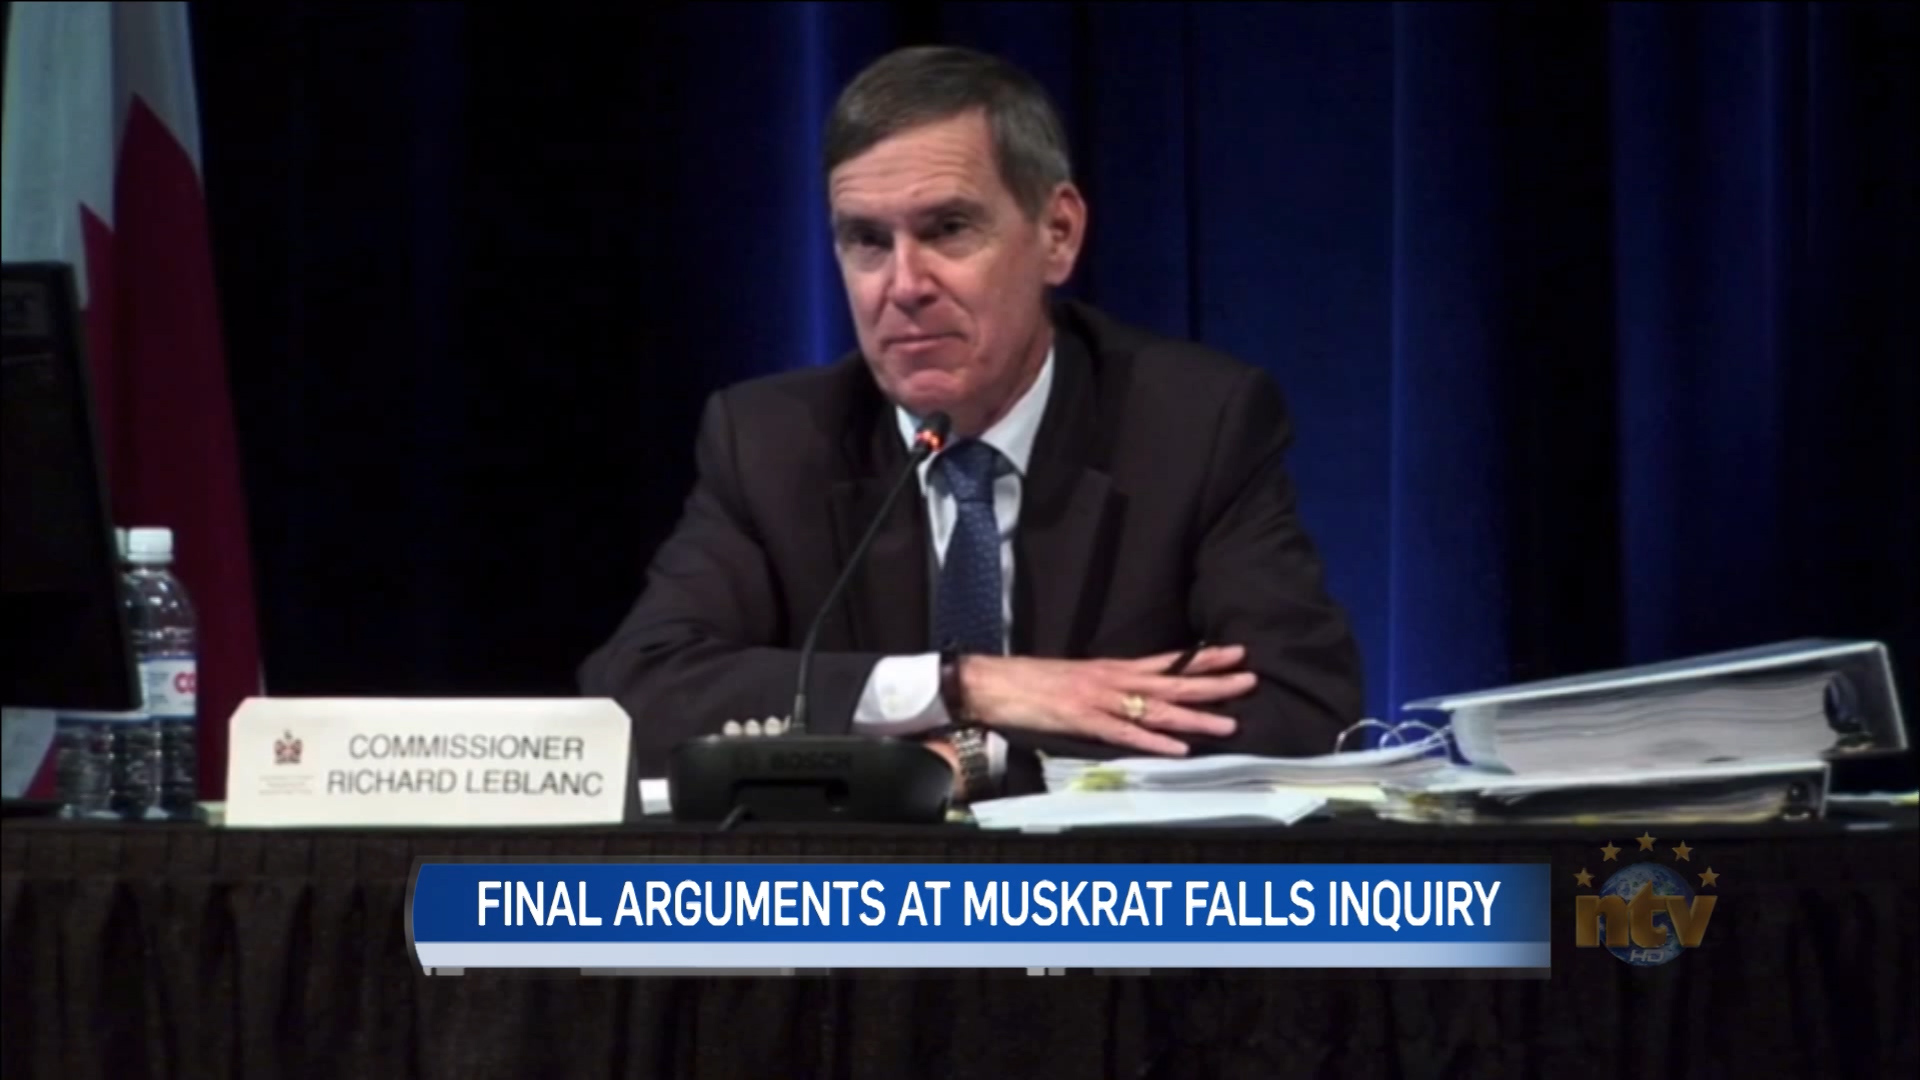 Muskrat Falls' political architects make last stand at public inquiry - ntv.ca